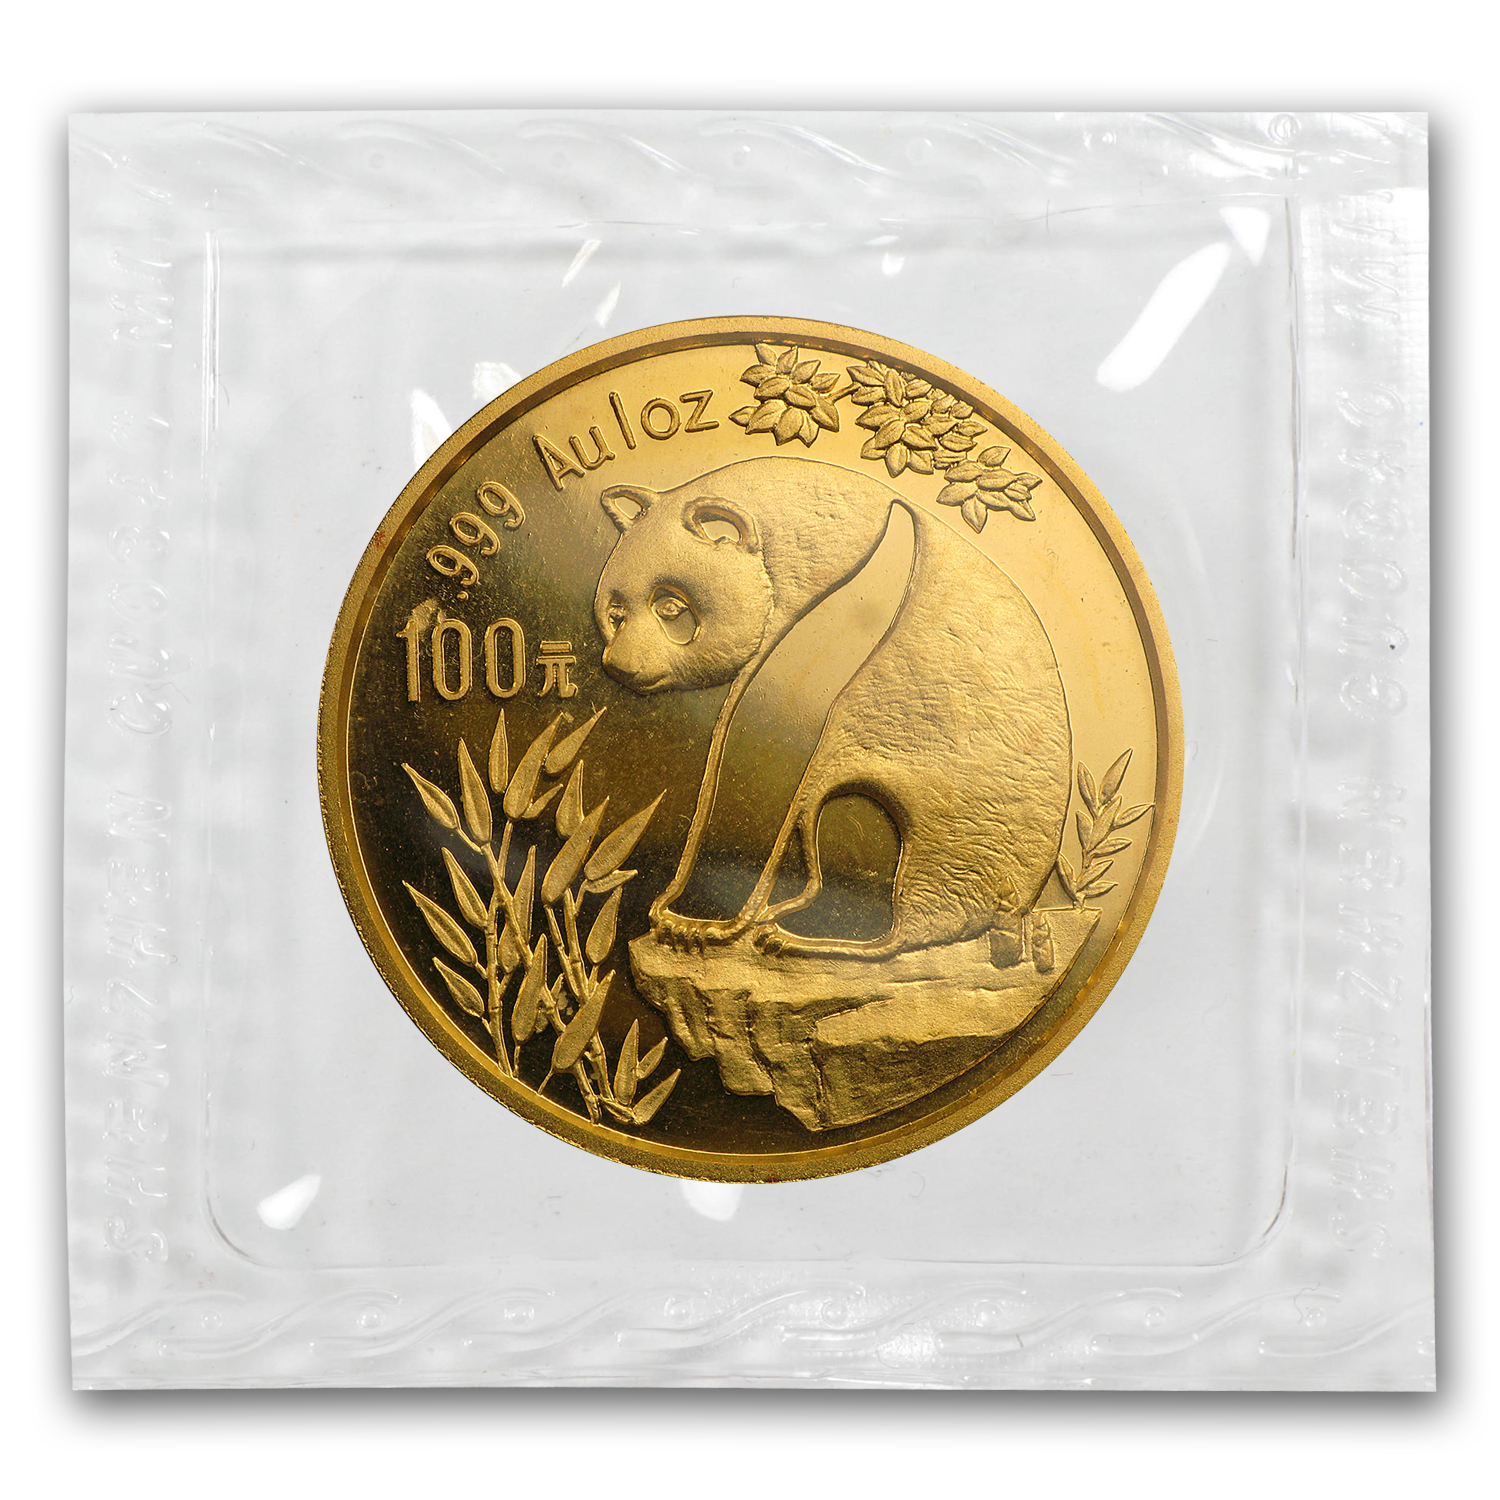 1993 1 oz Gold Chinese Panda - Small Date (Sealed)